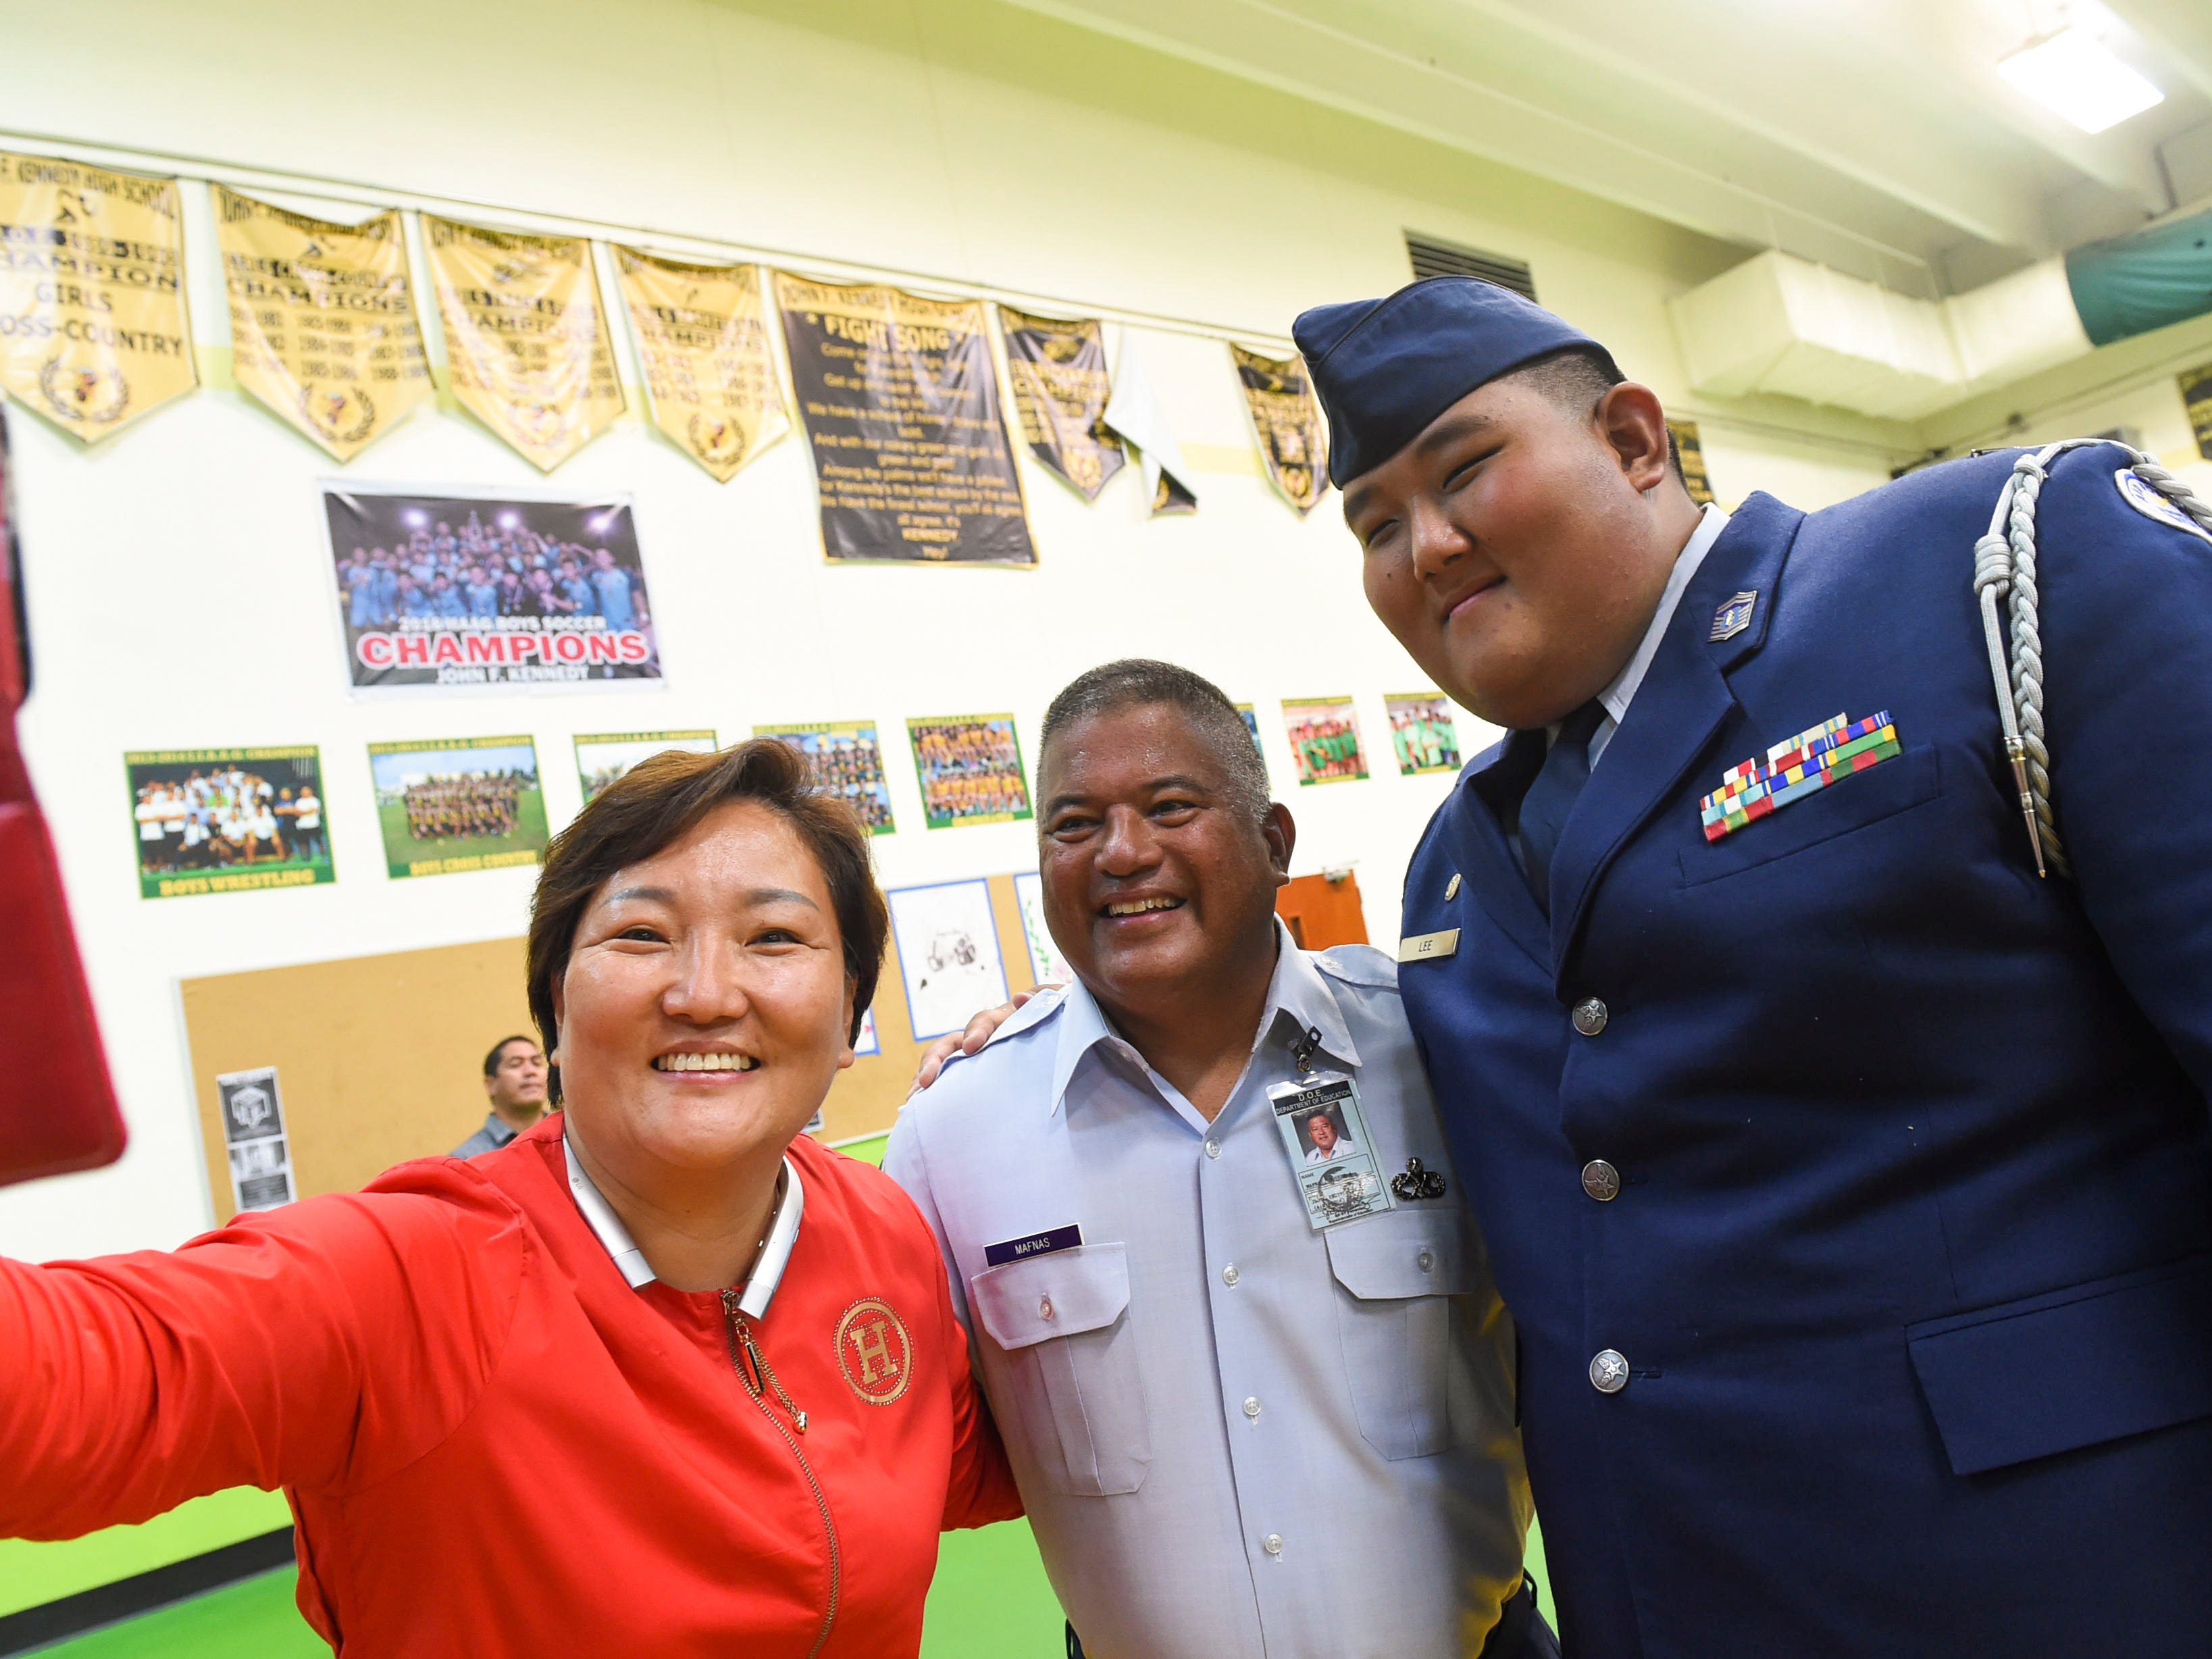 Ina Lee, left, Joseph A. Mafnas, John F. Kennedy High School Air Force Junior ROTC instructor, center, and Aaron Lee take a selfie at the JFK High School Gym, Nov. 9, 2018.